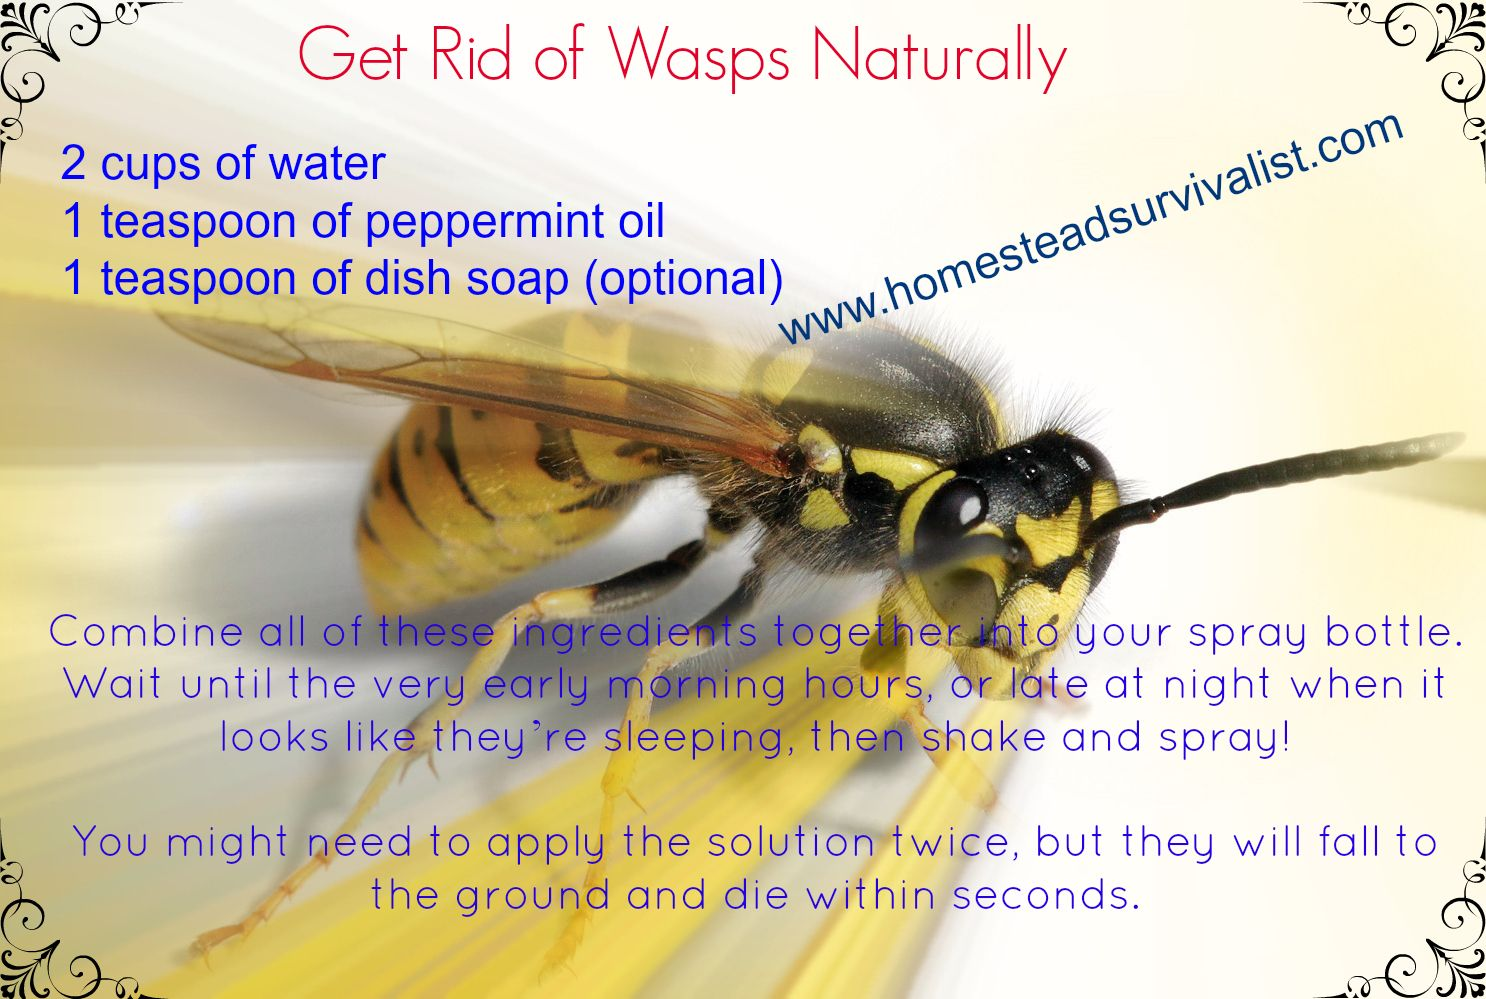 Get rid of wasps naturally from my homestead gallery